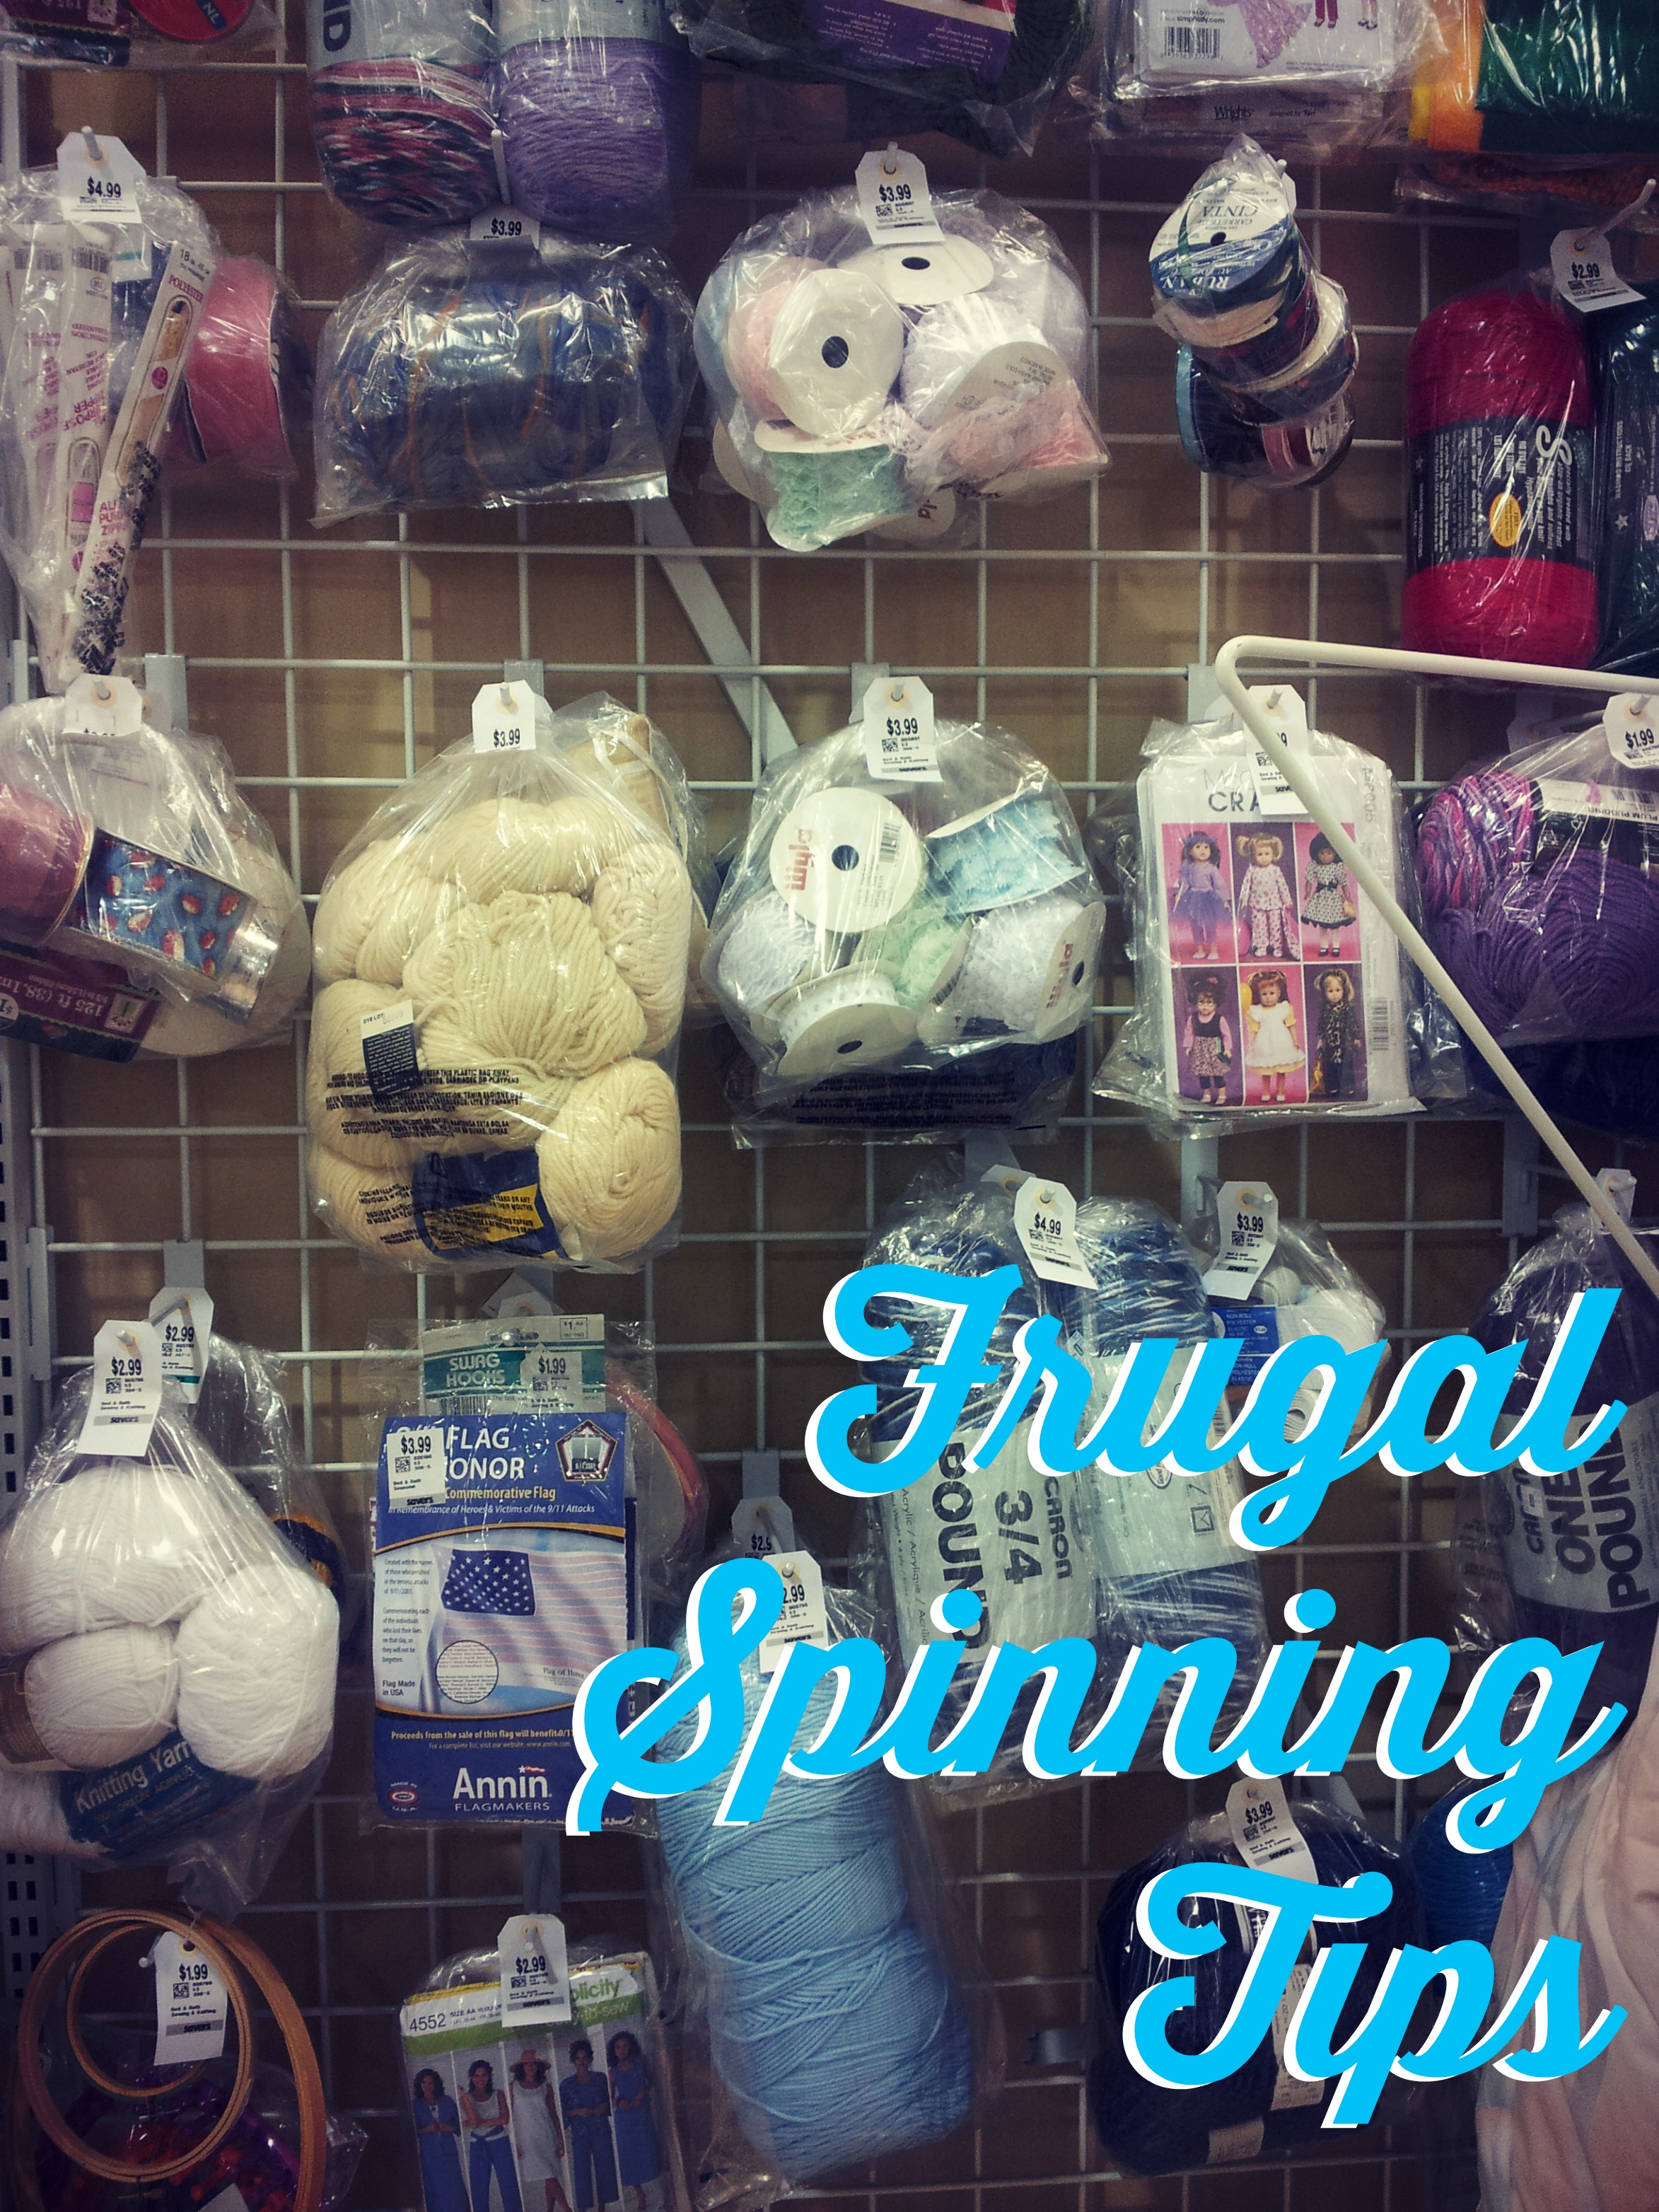 Title Image: Frugal Spinning Tips